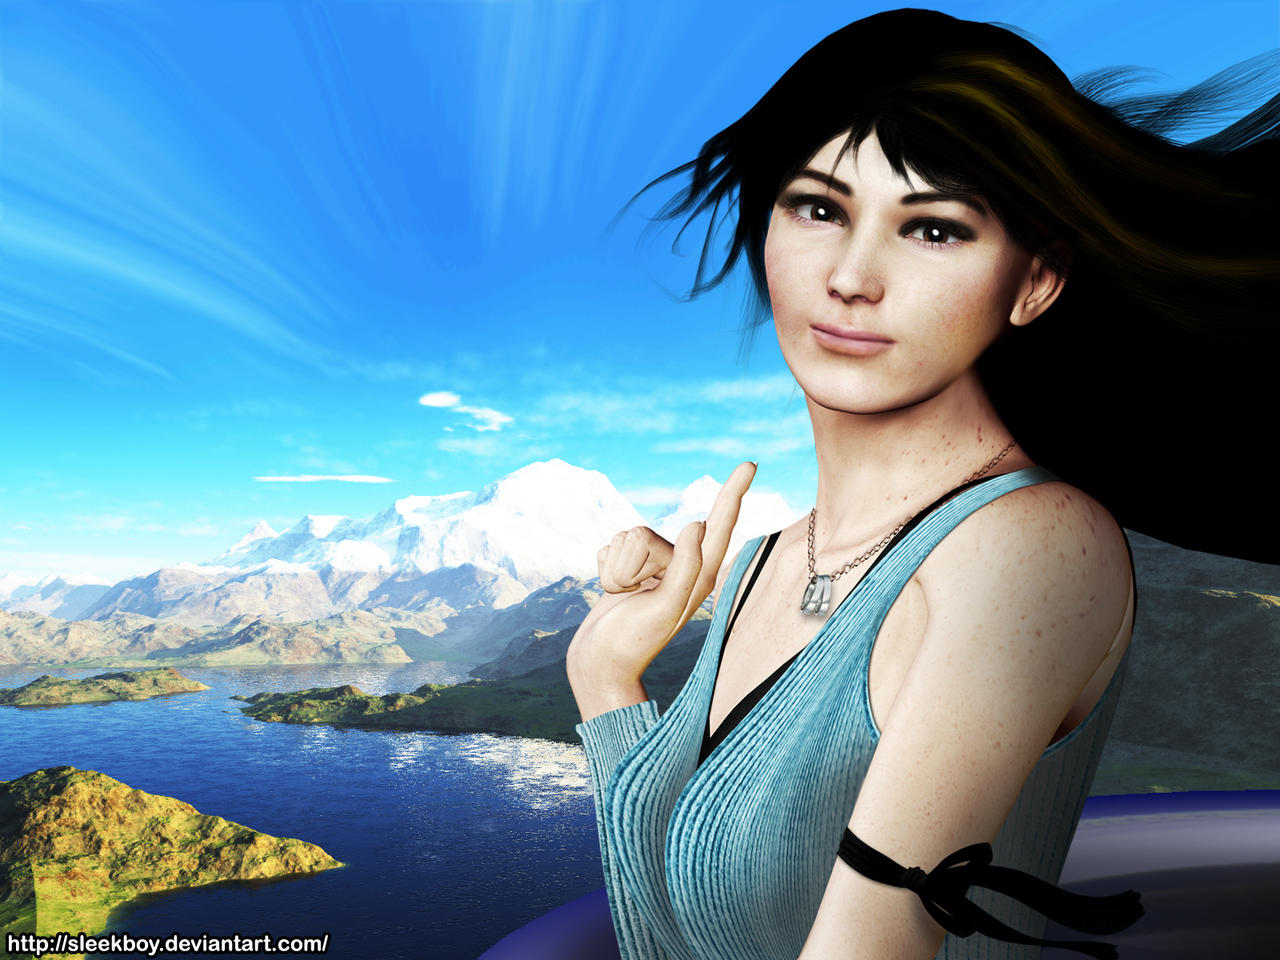 FF VIII: Eyes On Her